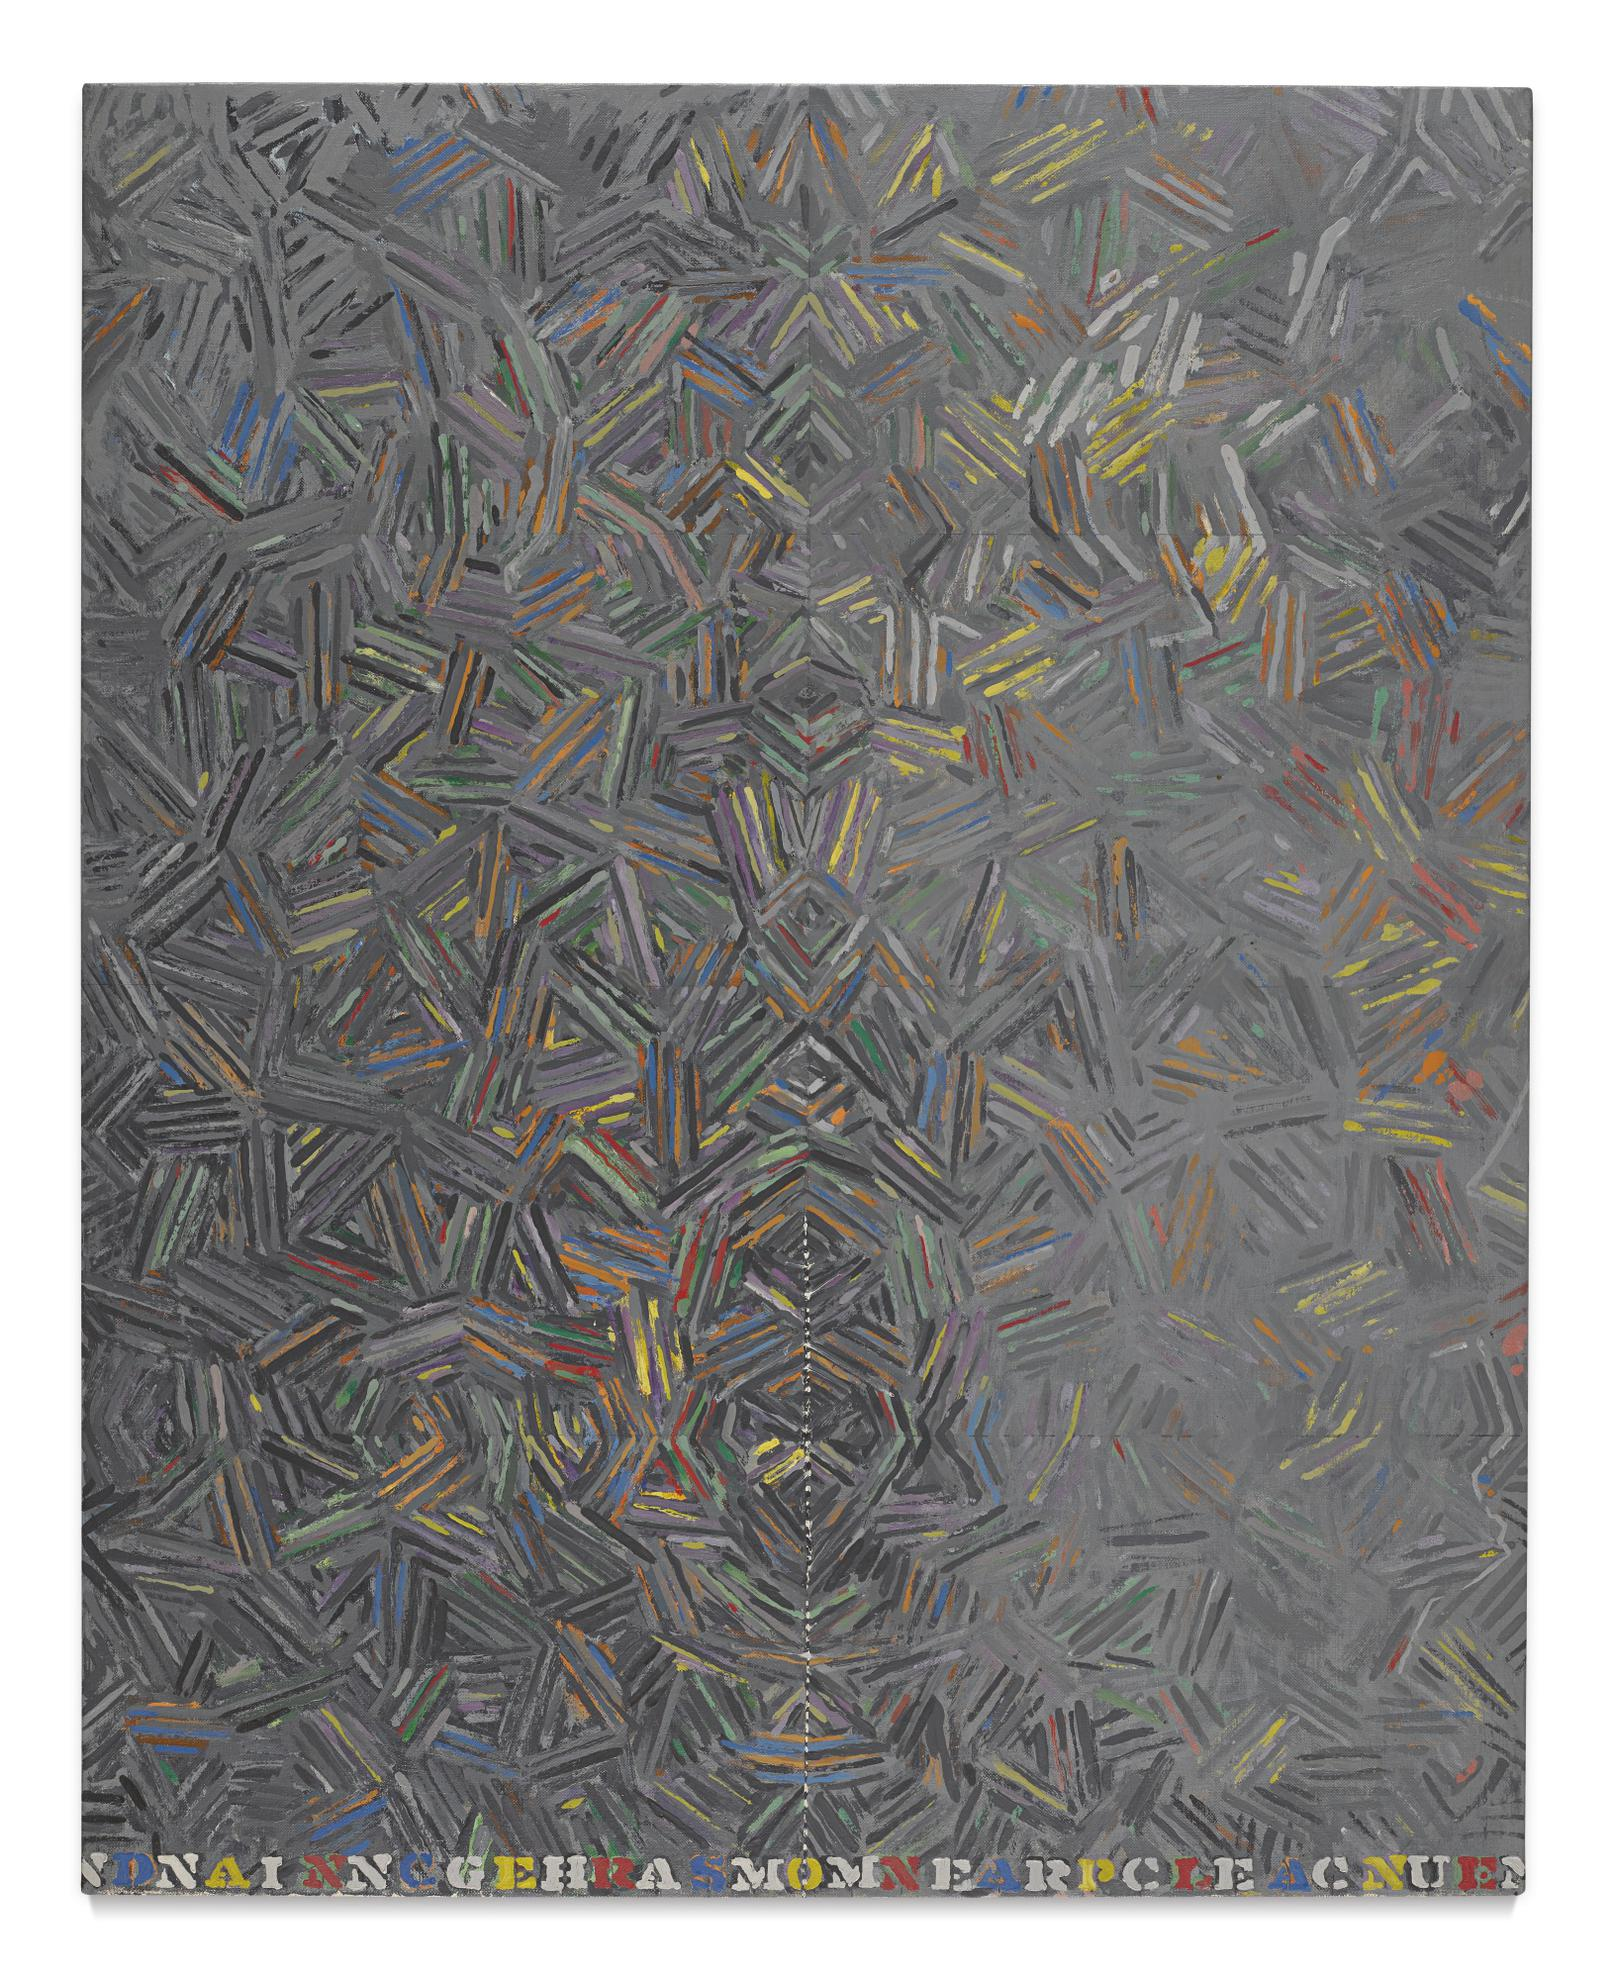 Jasper Johns-Dancers On A Plane-1981